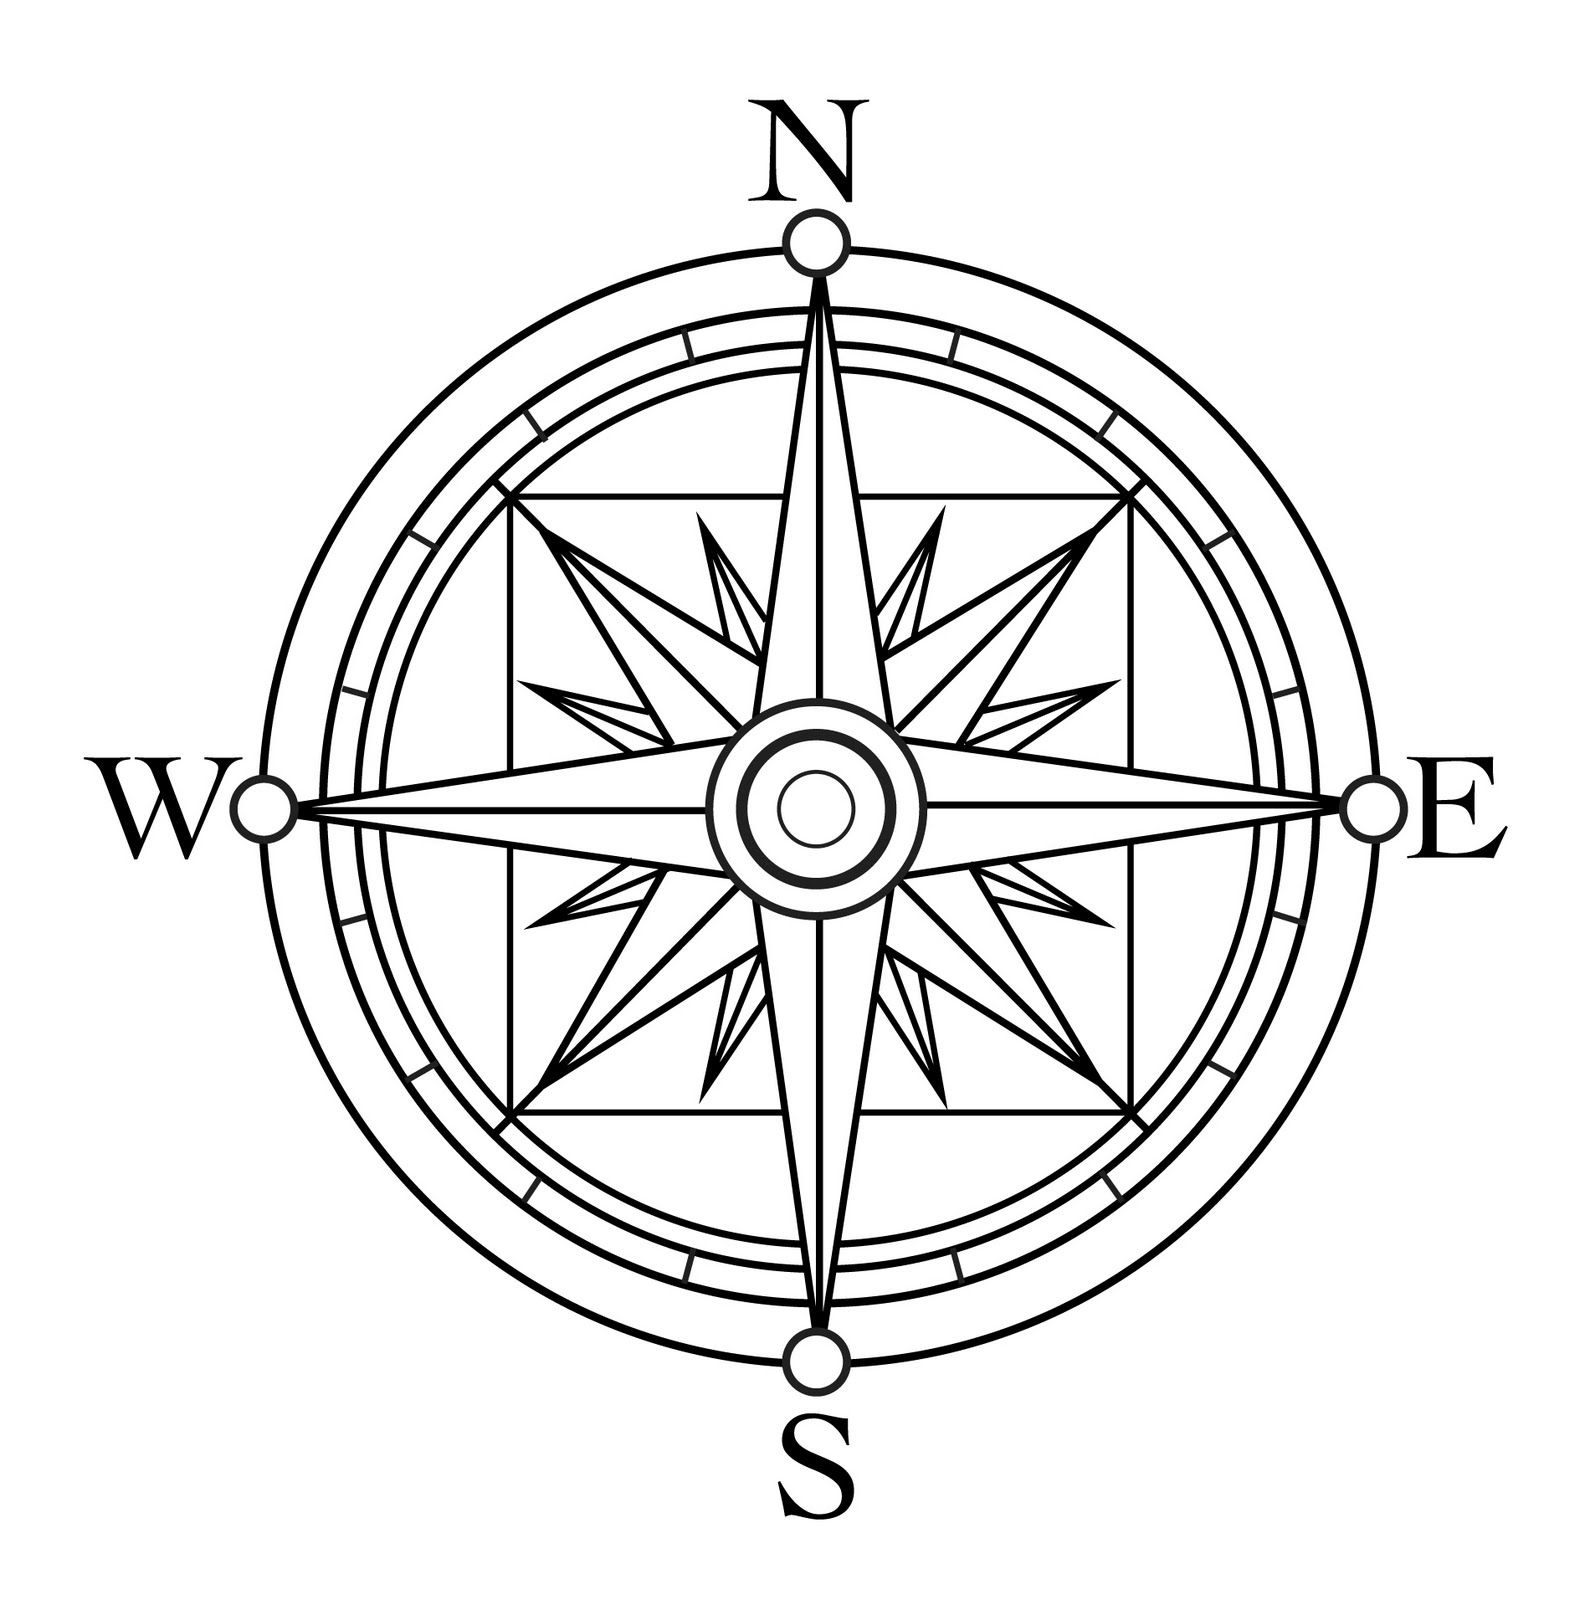 1590x1600 Clip Art Compass Rose And one variation in color in case you#39d